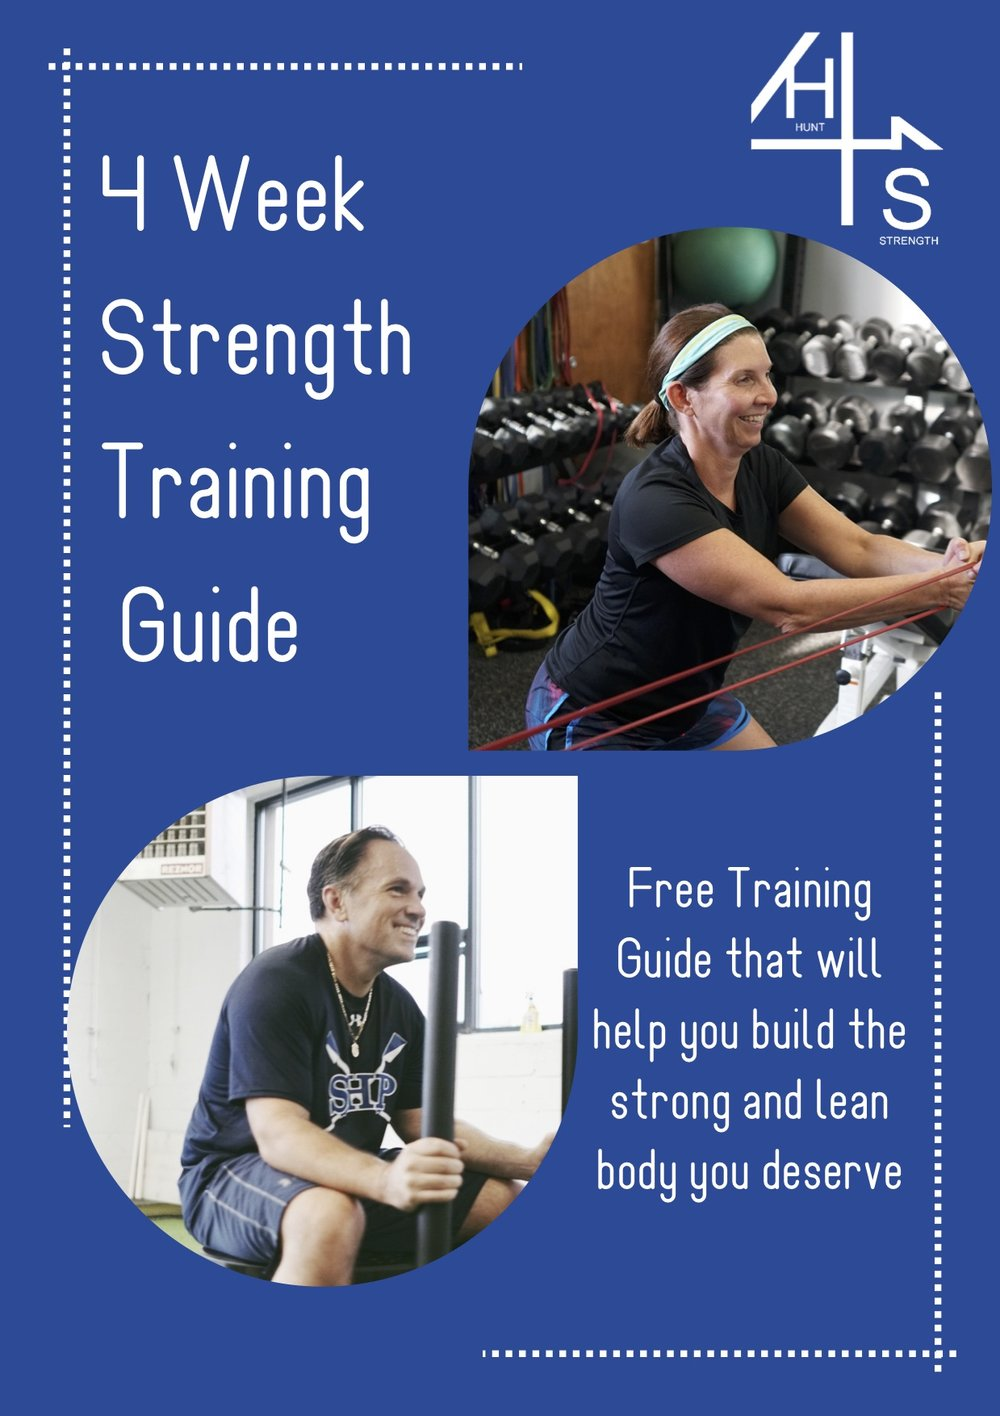 4 Week Strength Training Guide.jpg